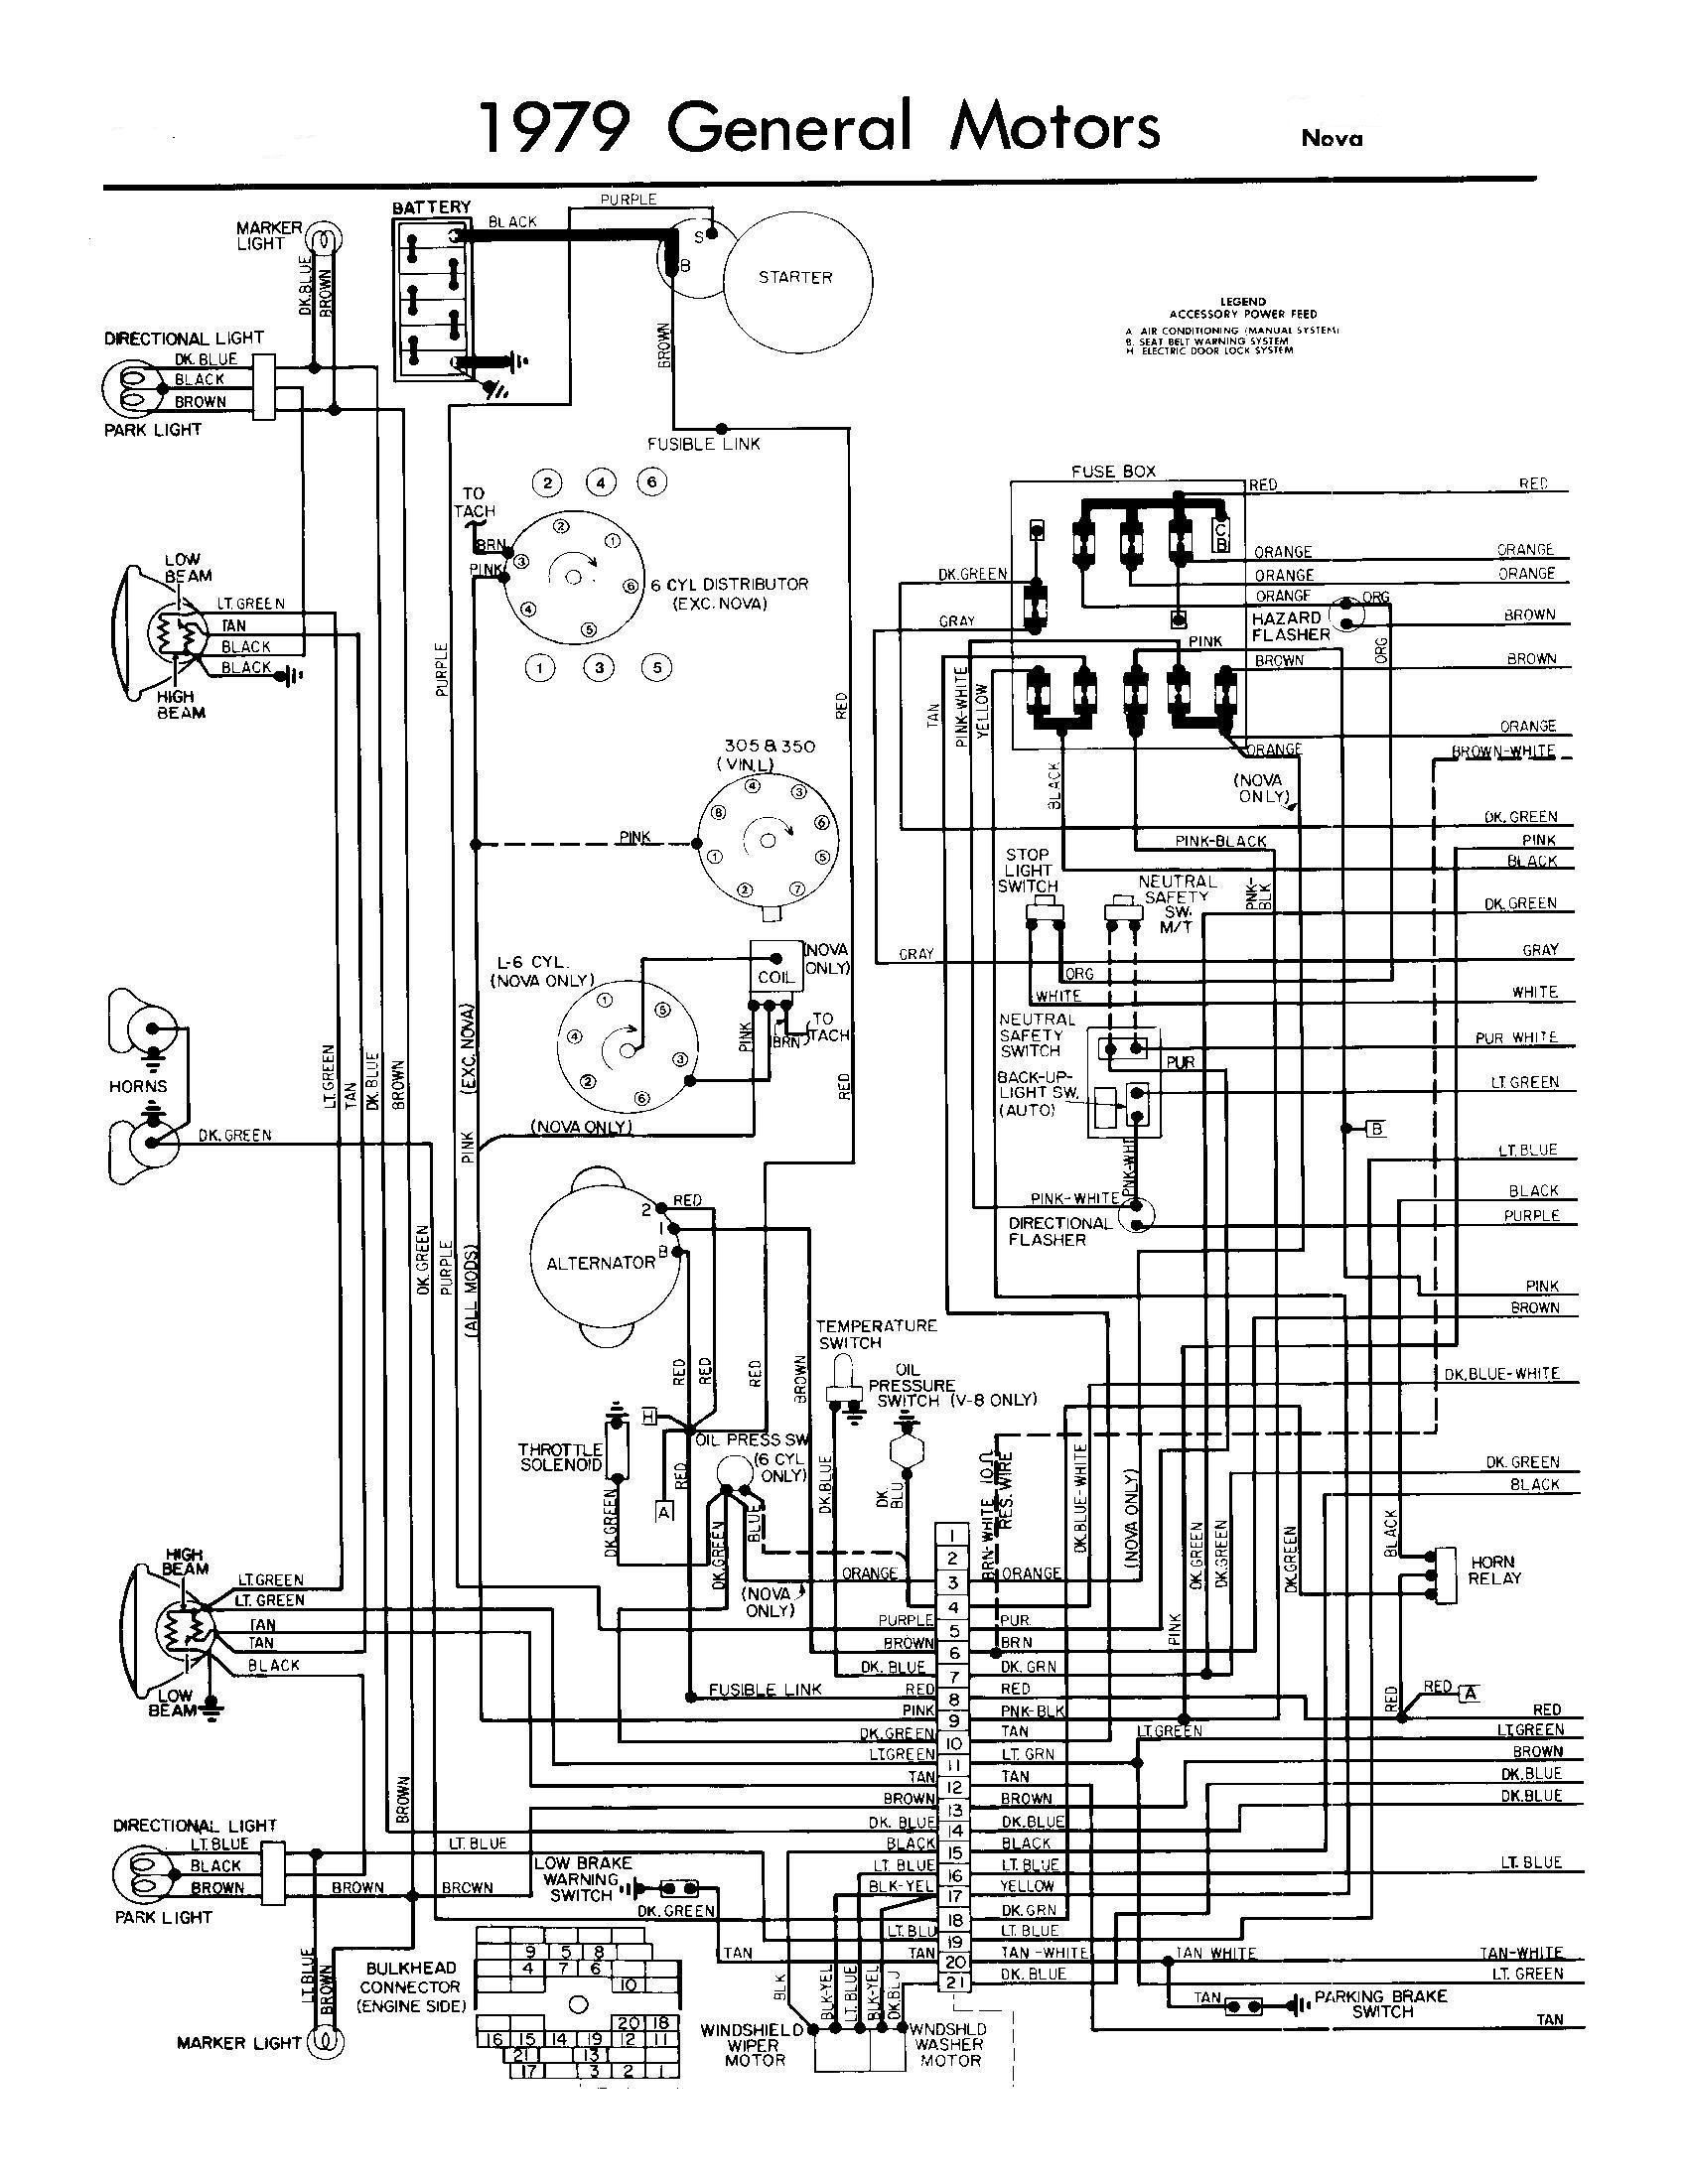 82 cj7 dash wiring diagram